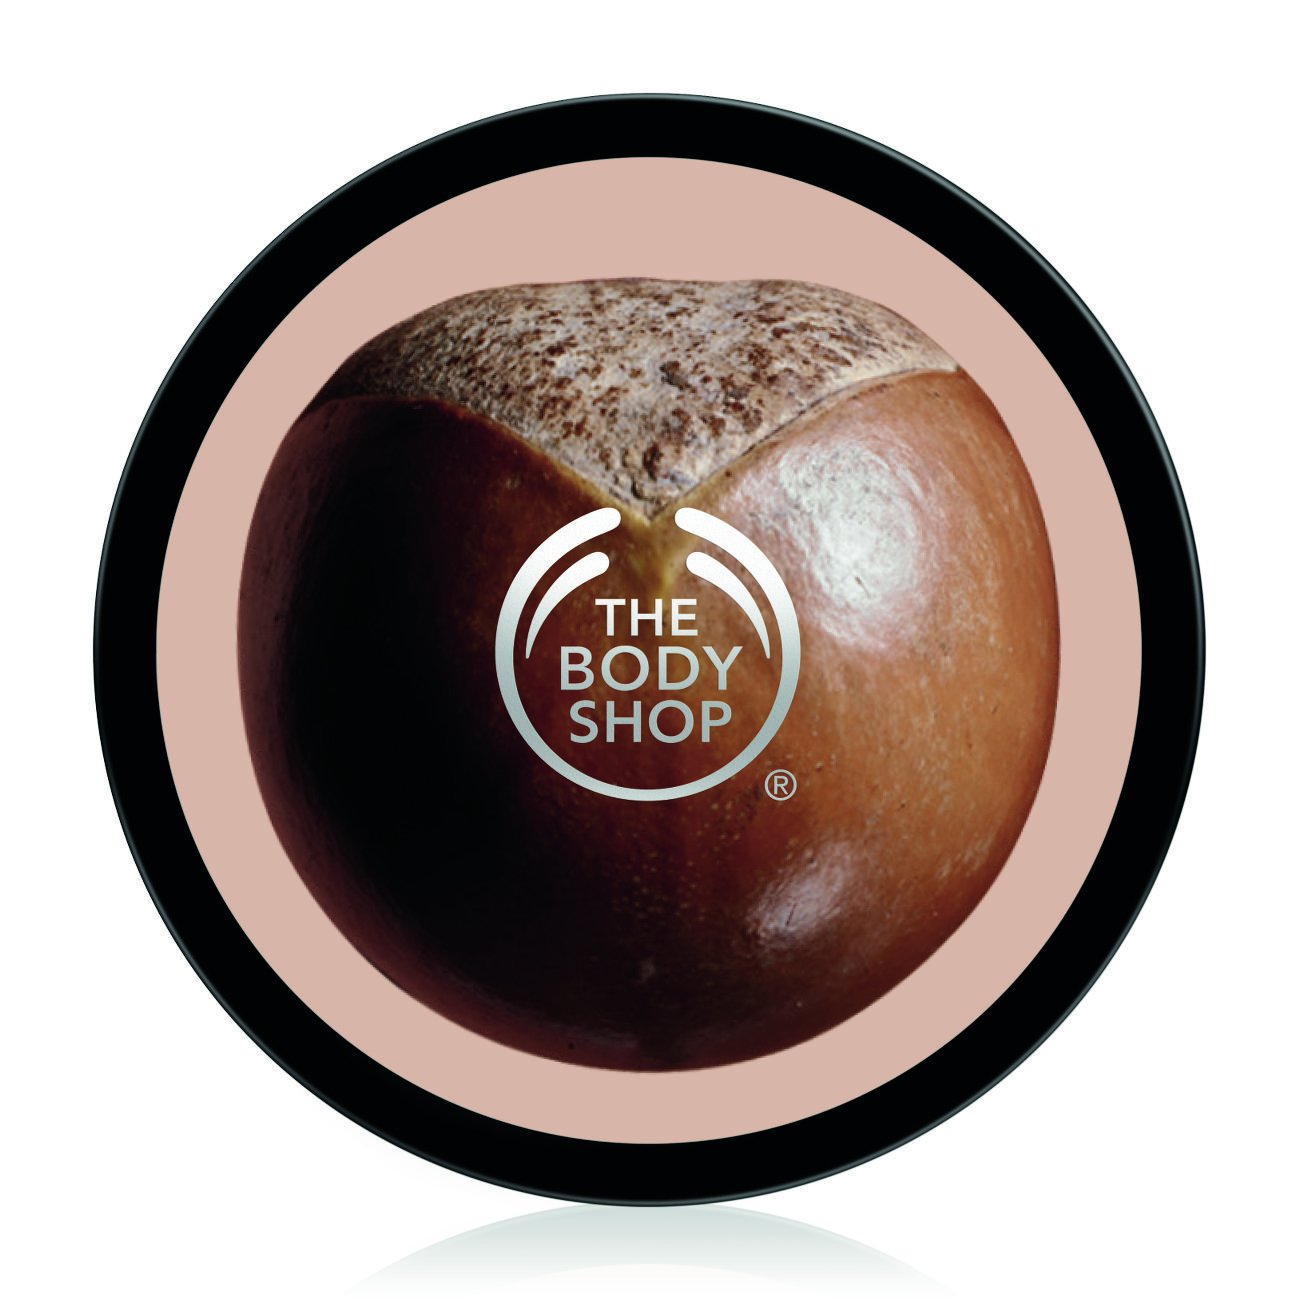 The Body Shop Shea Body Butter, 6.75 Oz by The Body Shop